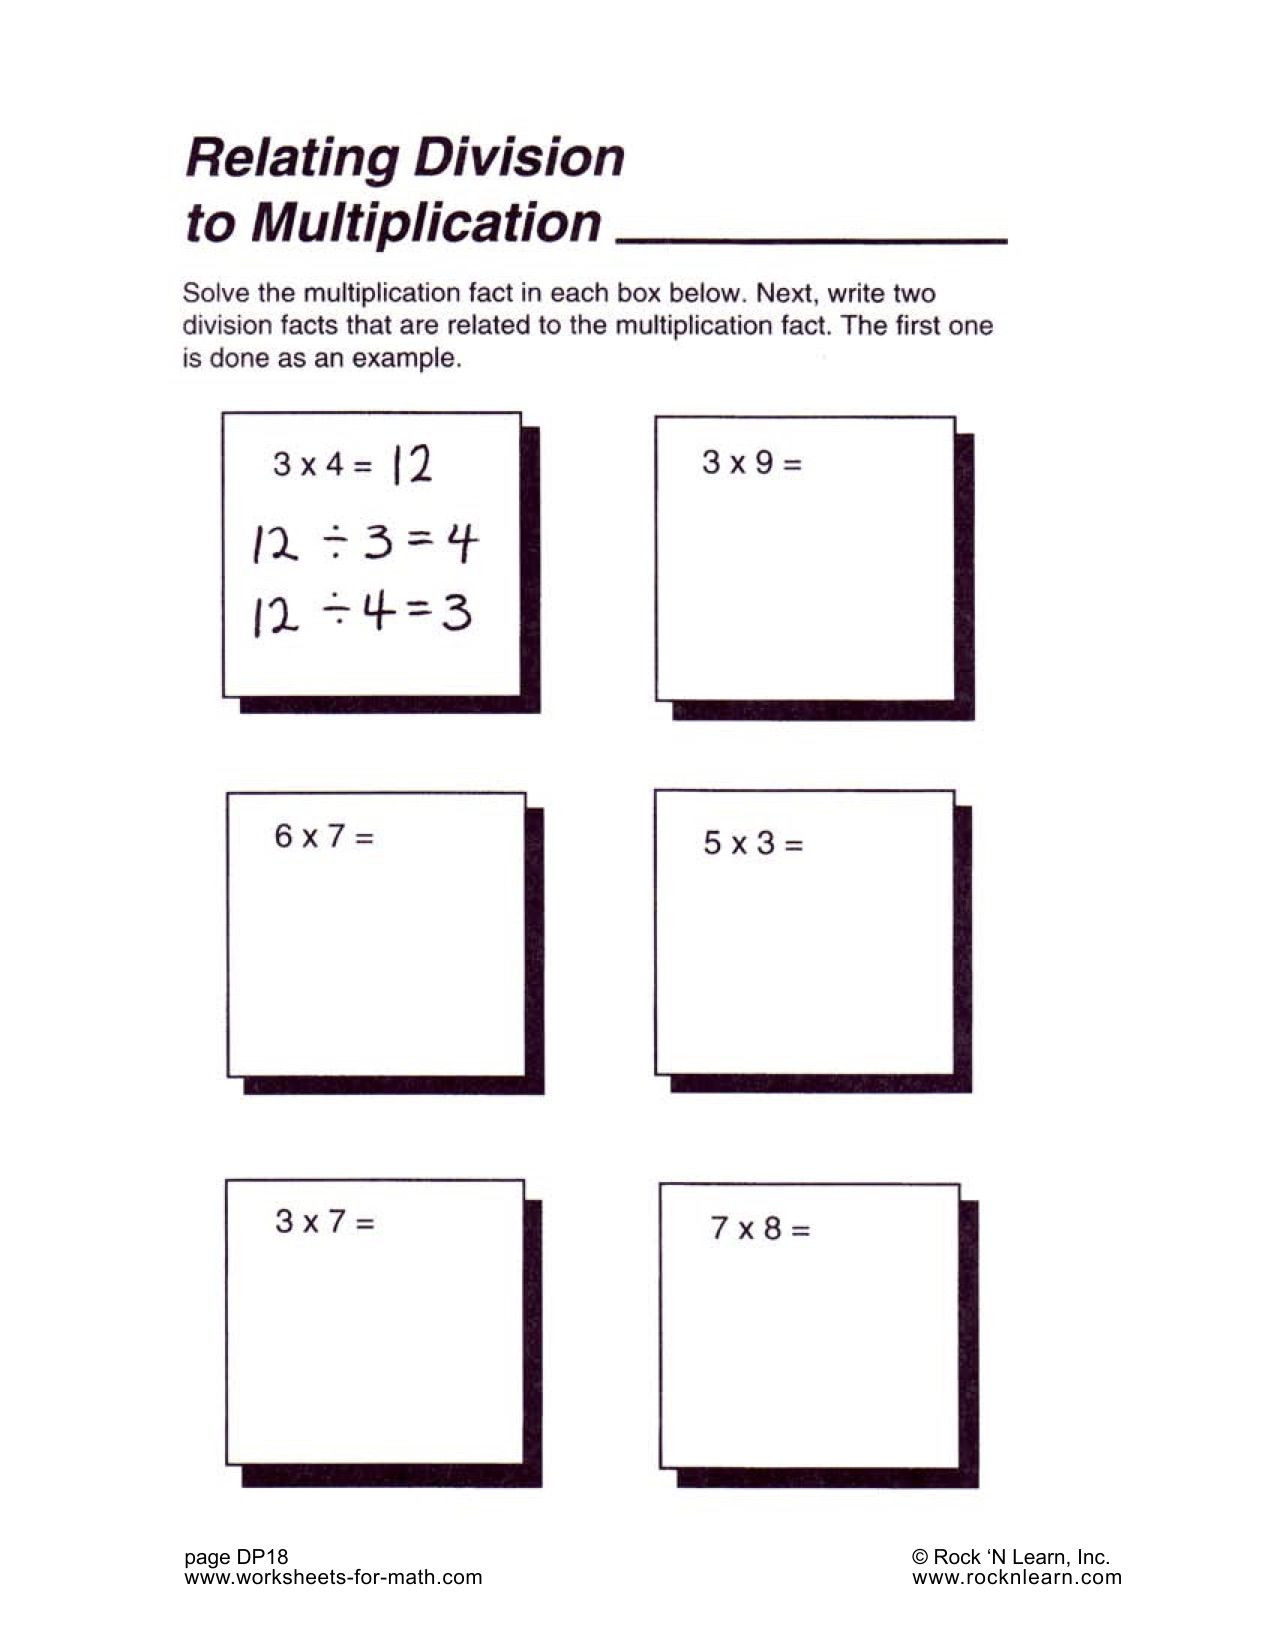 Related Multiplication Facts Worksheet Theme Library